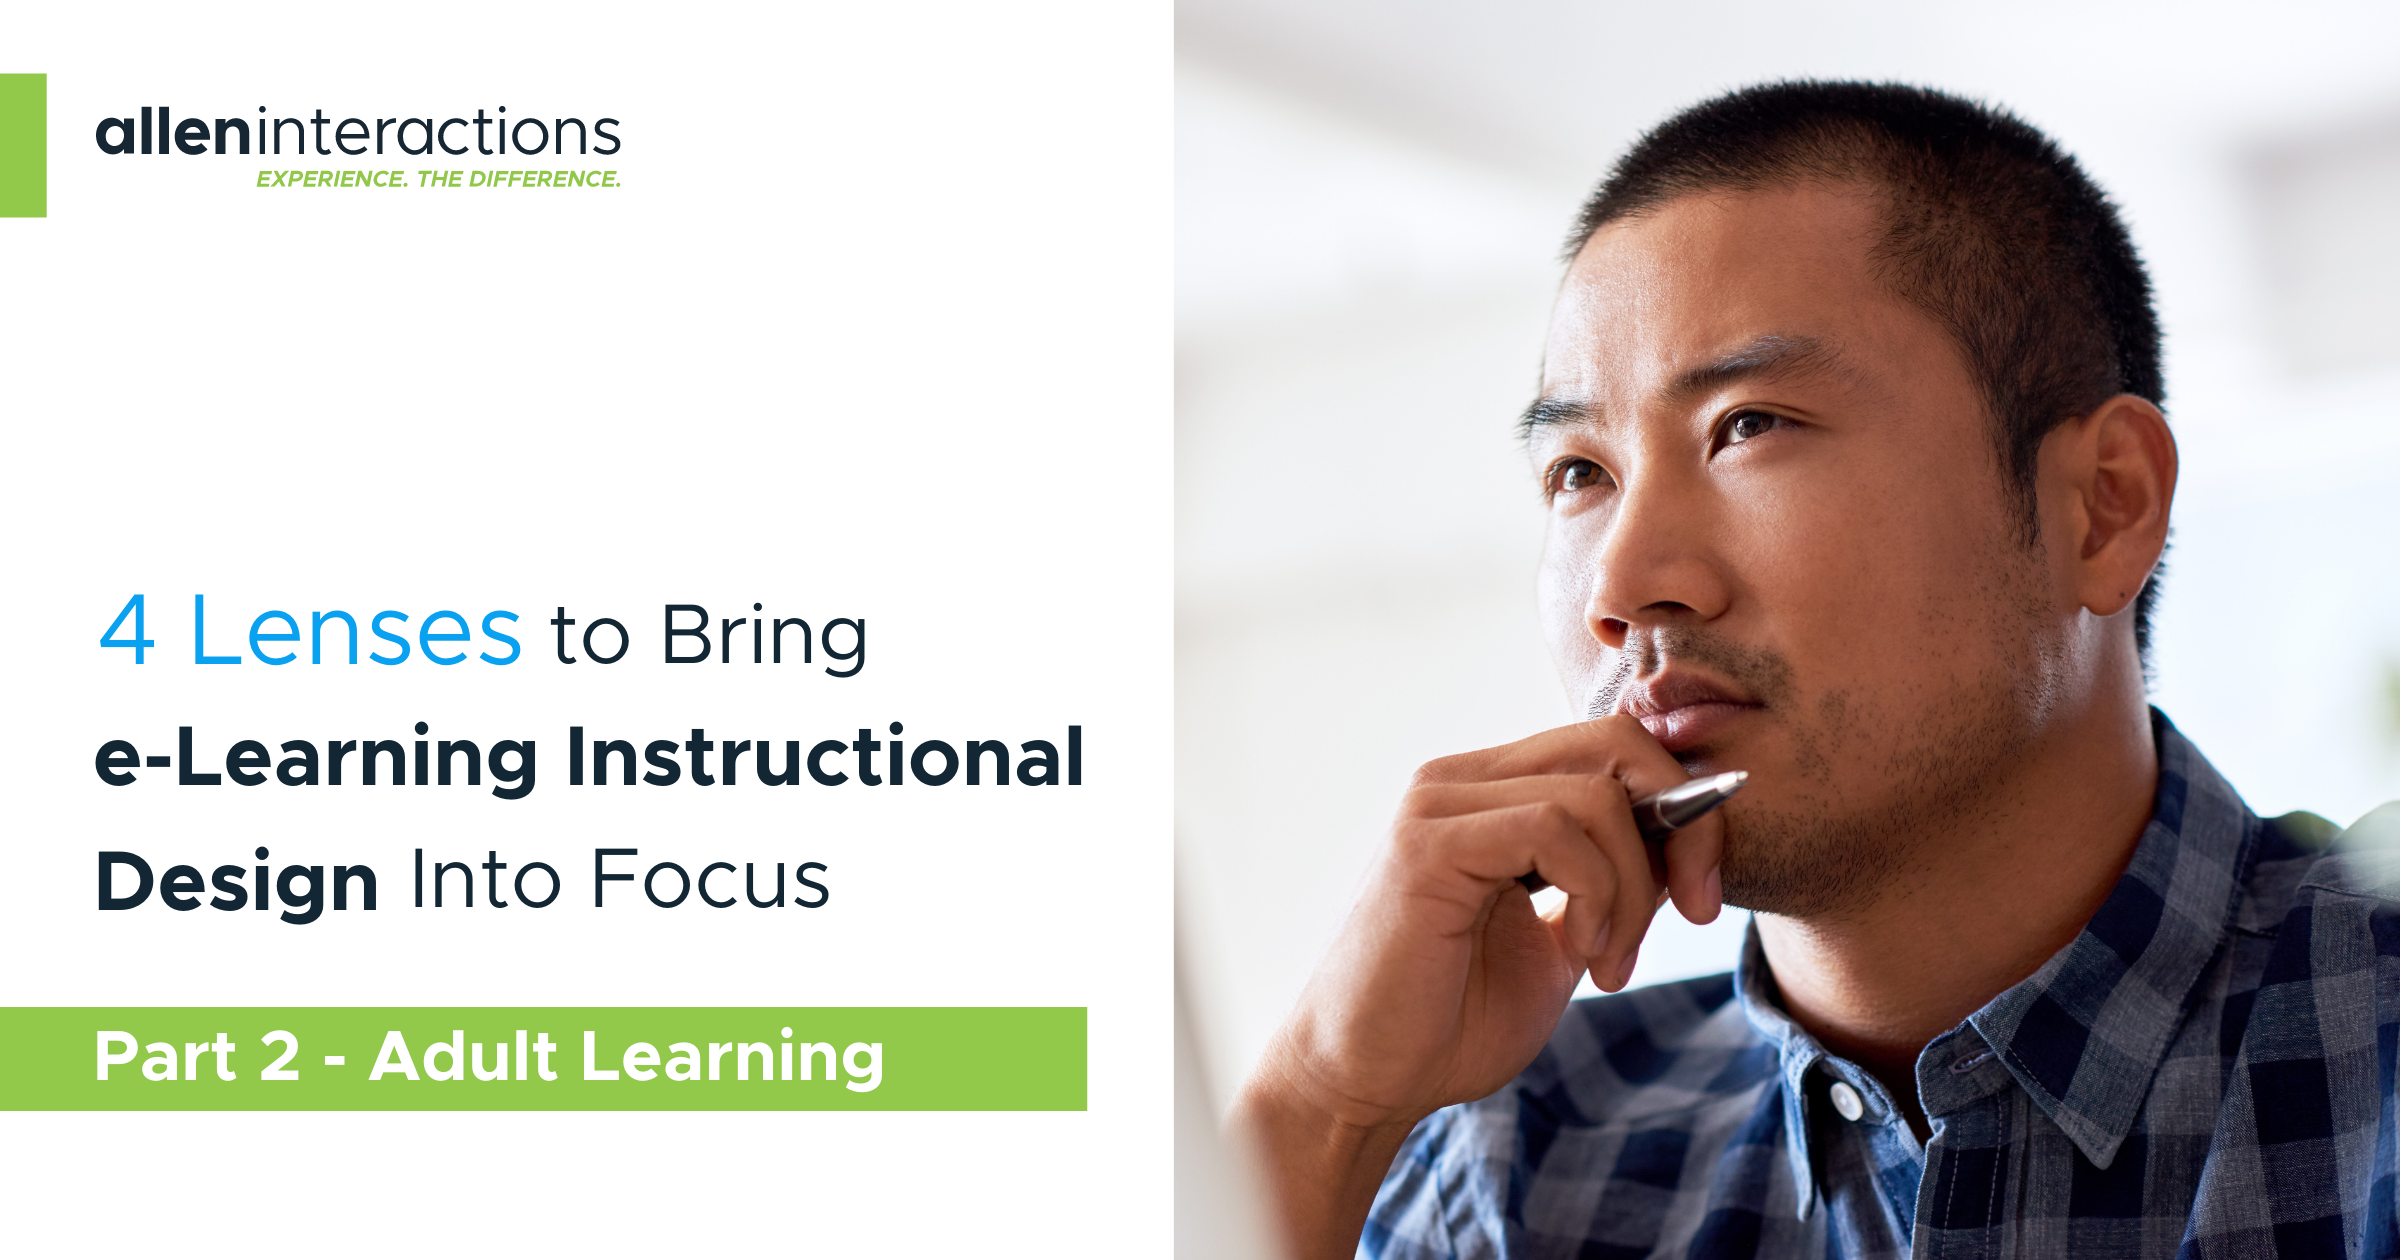 4 Lenses To Bring e-Learning Instructional Design Into Focus With CCAF—Part 2